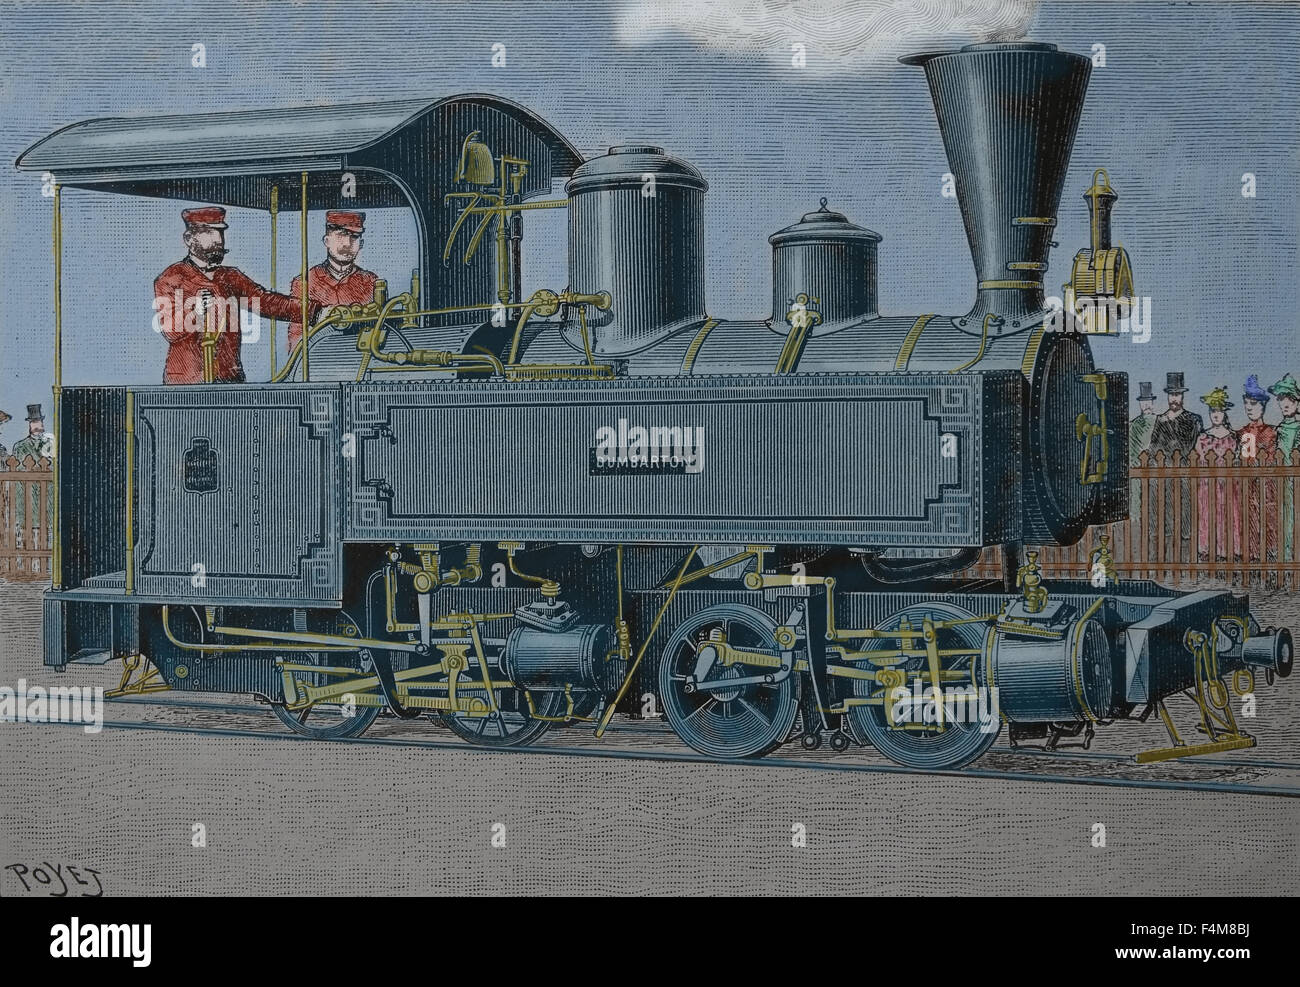 Steam locomotive. 19th century. Engraving. Later colouration. - Stock Image